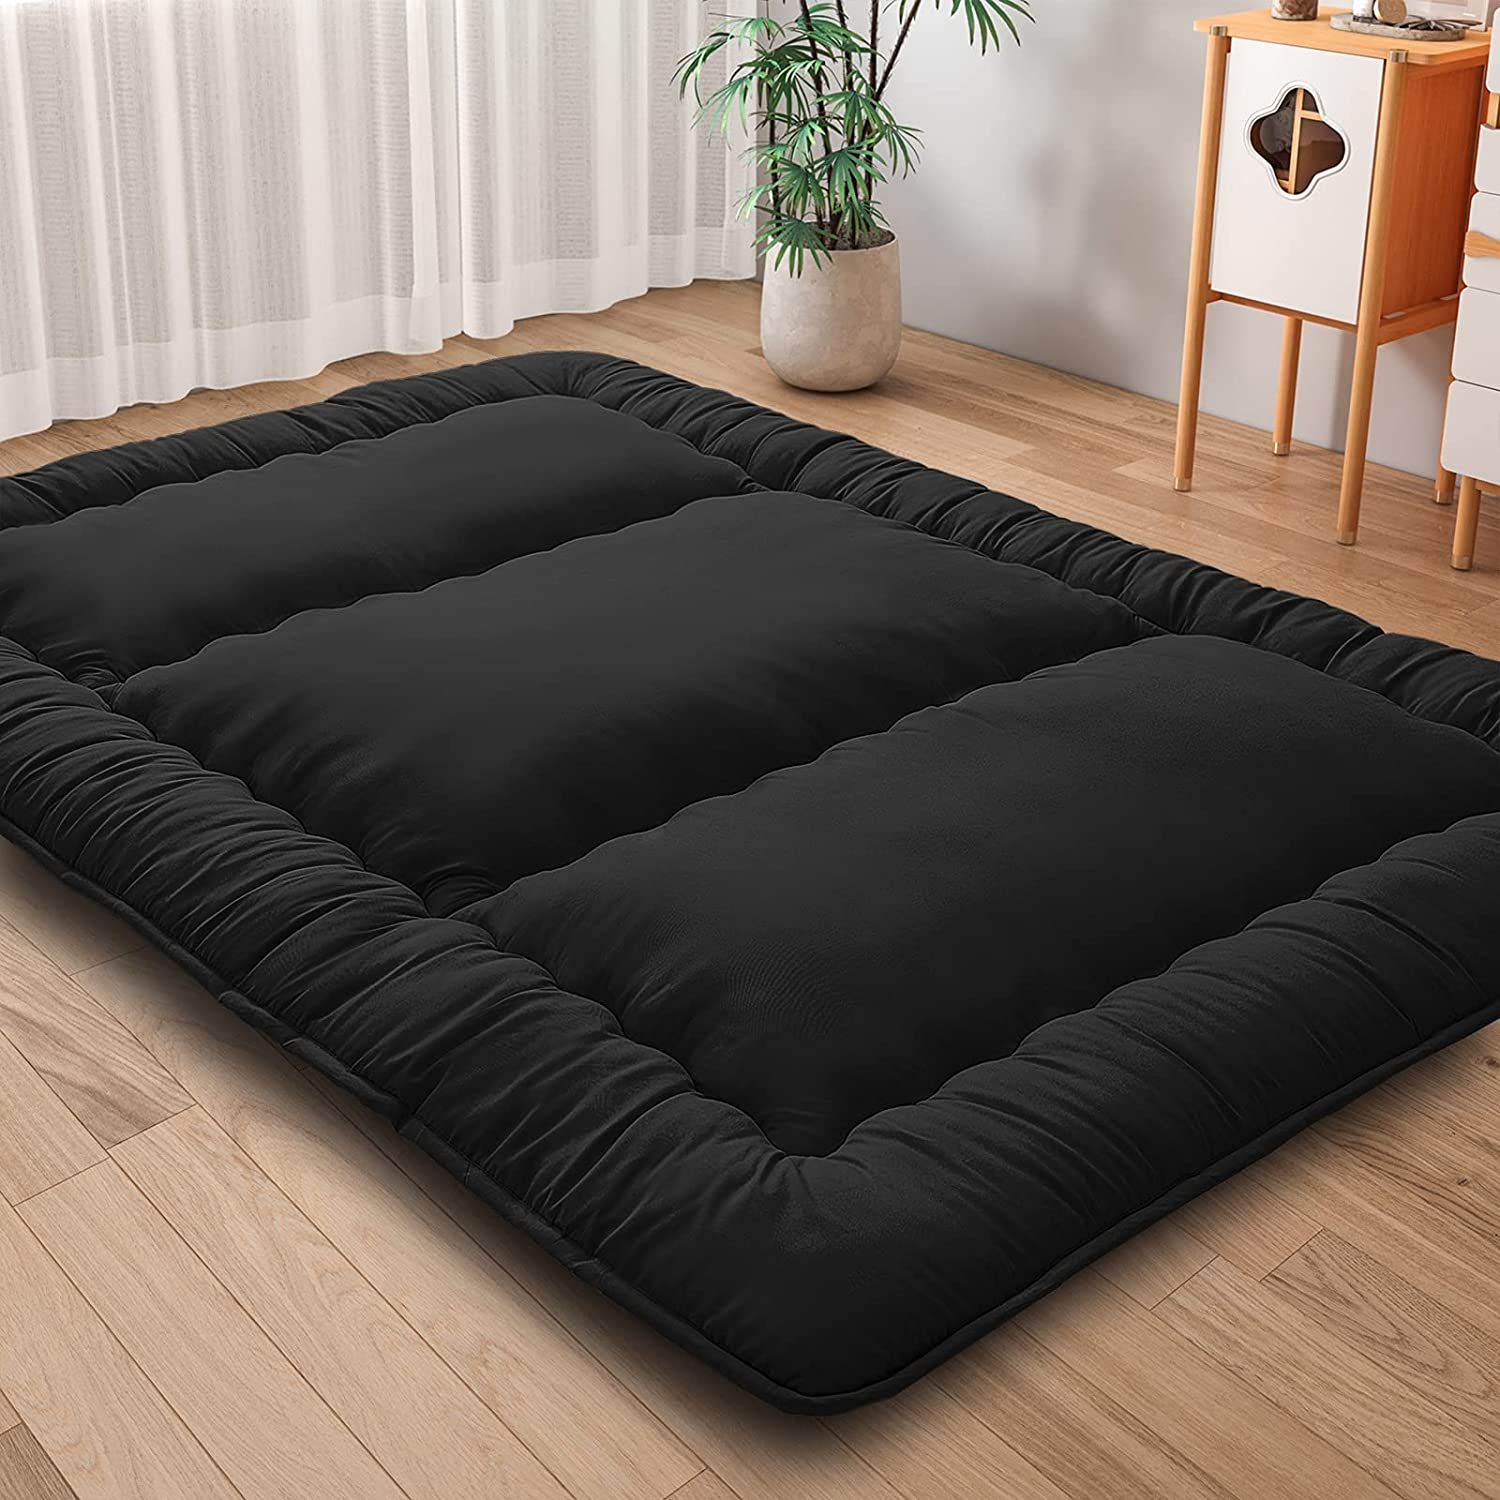 Floor Mattress Twin Topper Japanese Super beauty product restock quality top Complete Free Shipping for Futon